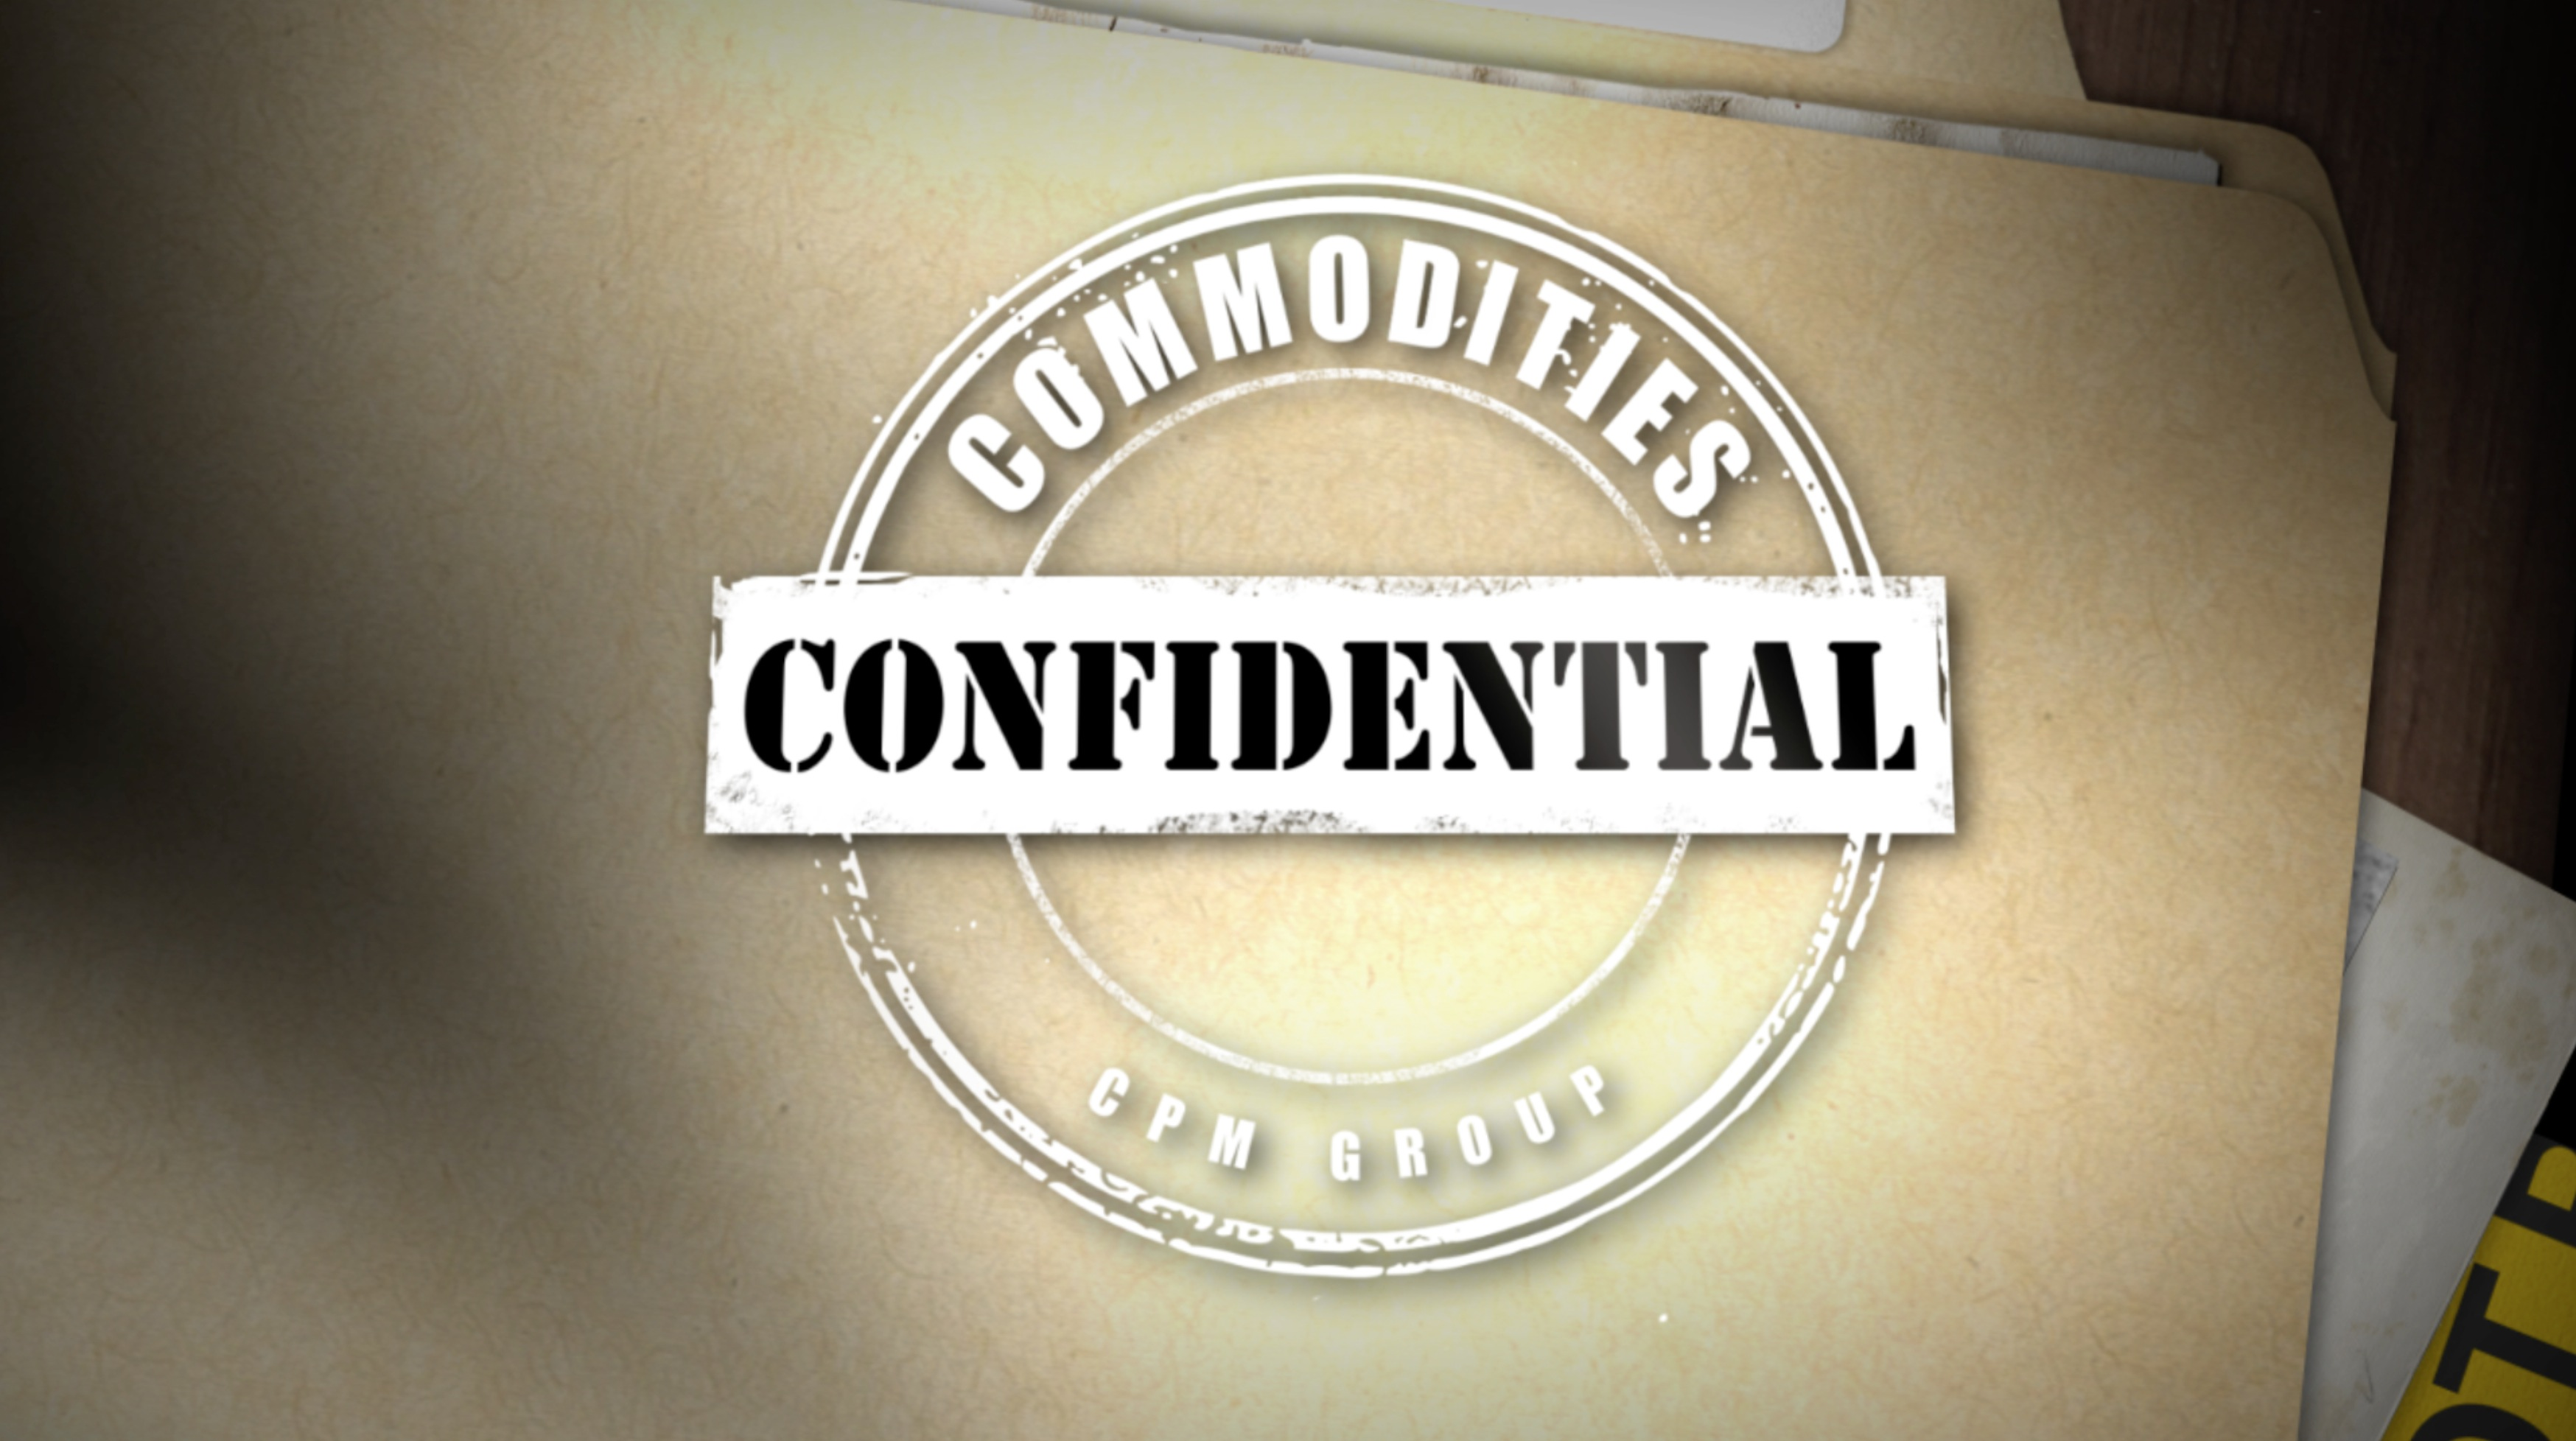 Commodities Confidential